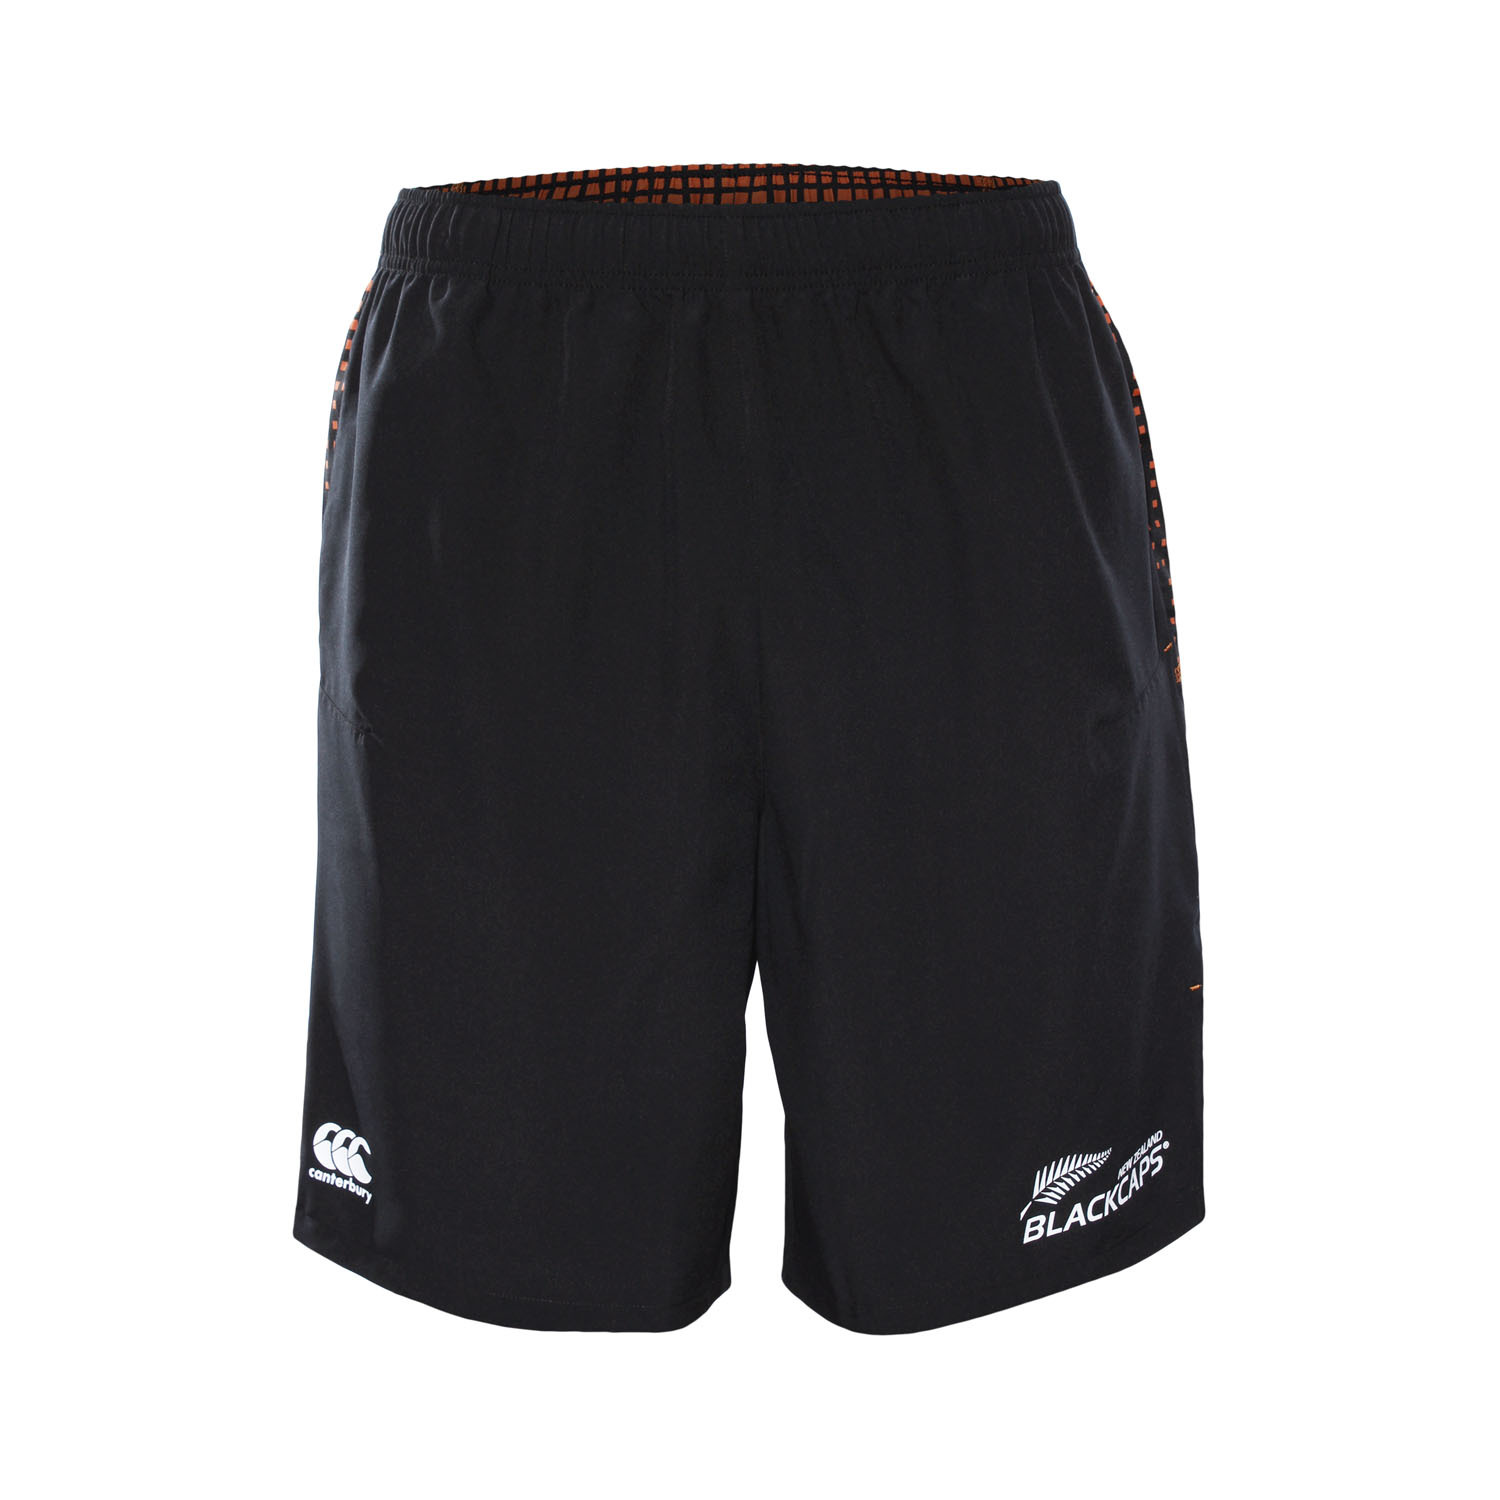 BLACKCAPS Gym Shorts (4XL) image